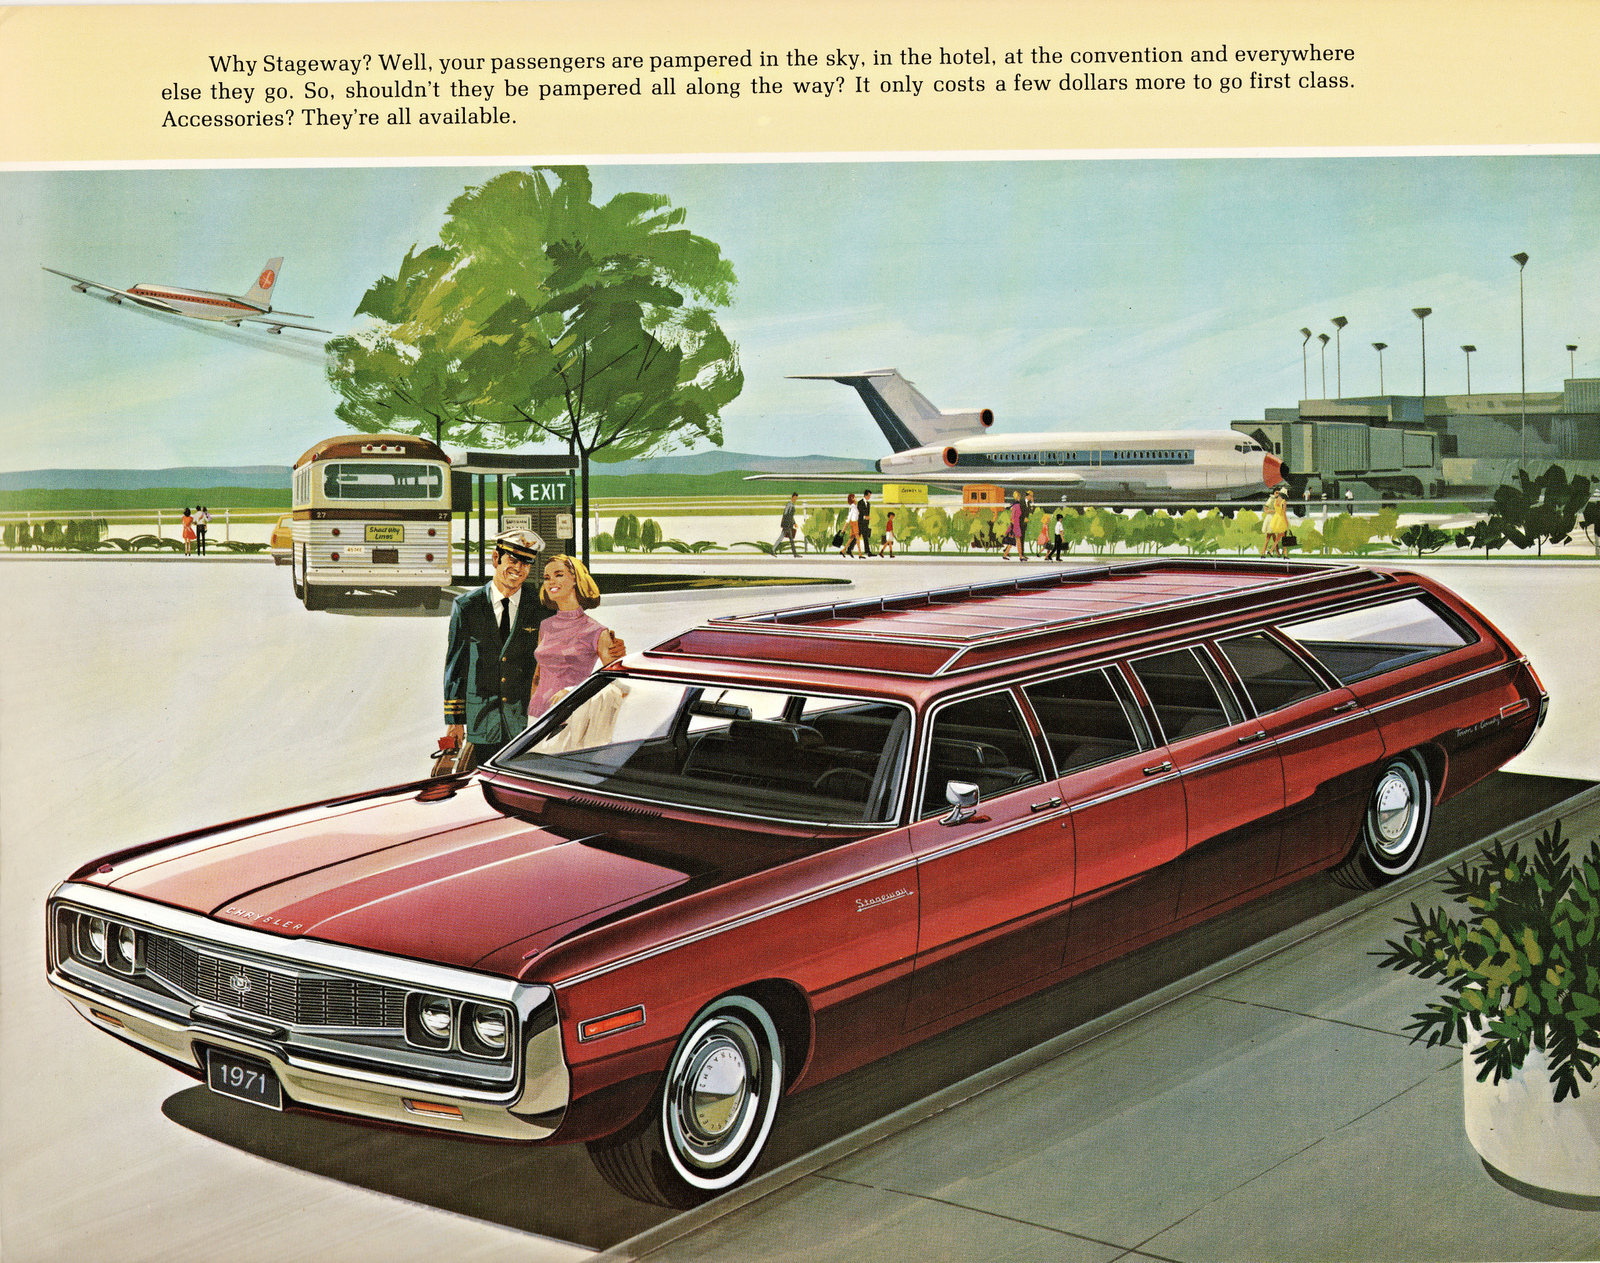 Primary image for 1971 Chrysler Stageway station wagon | 24 X 36 inch poster